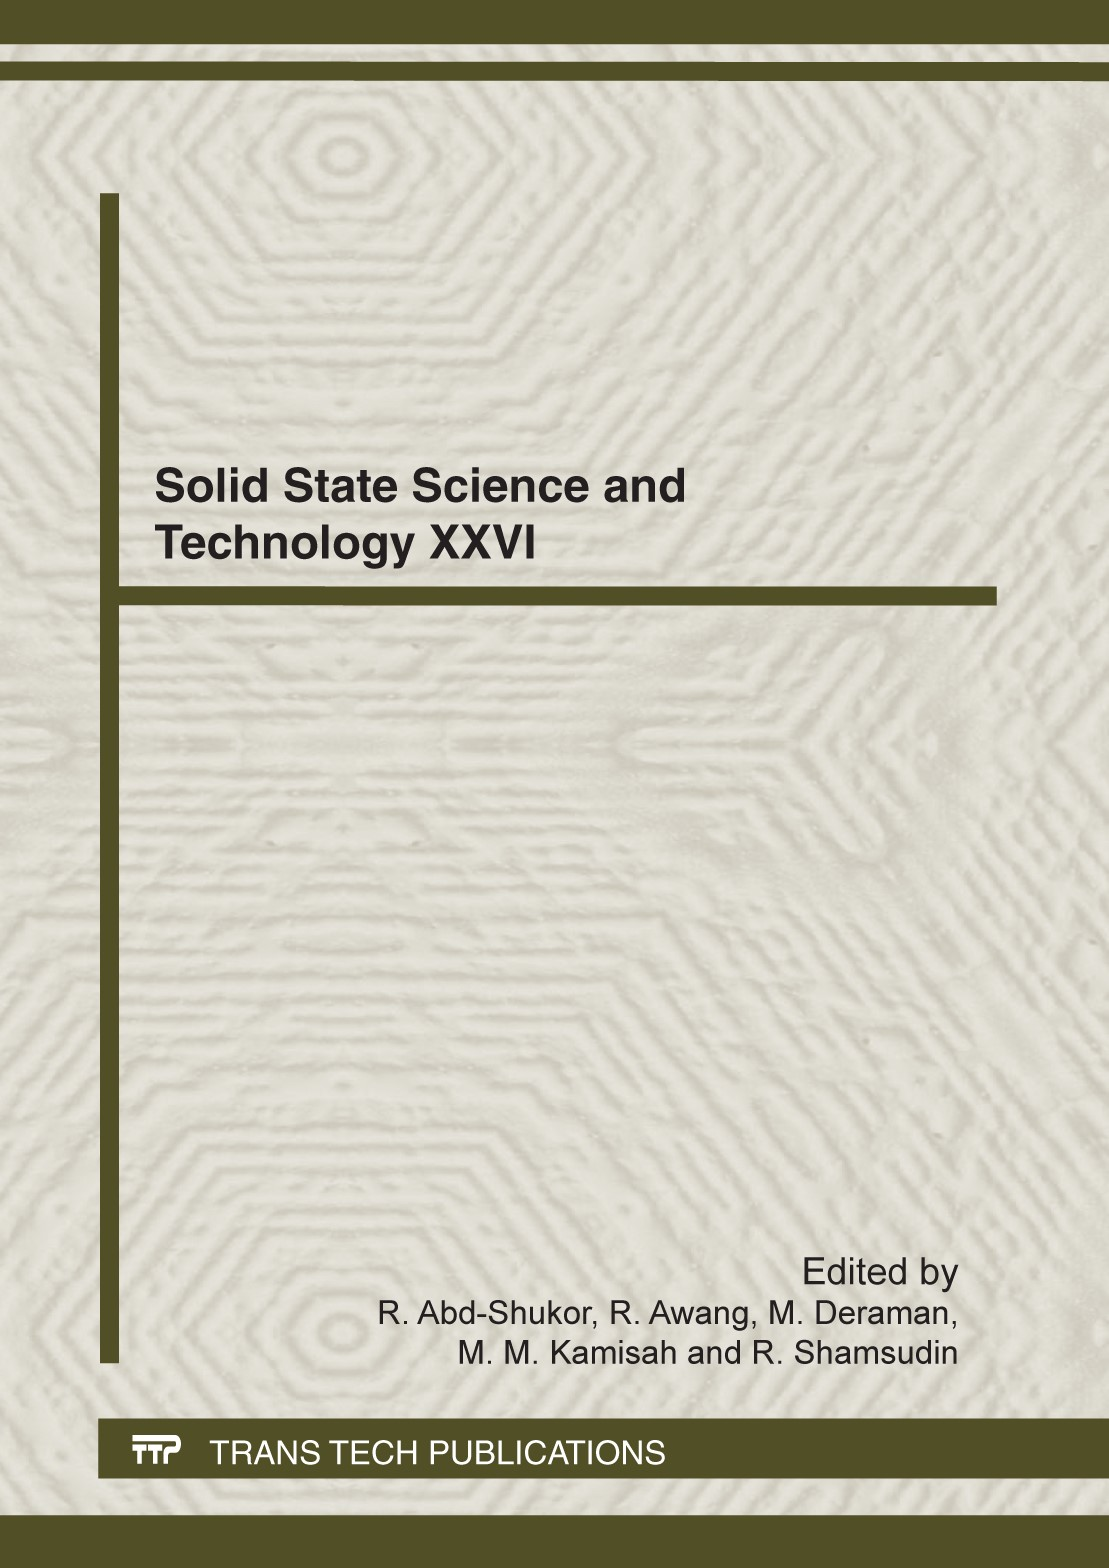 Solid State Science and Technology XXVI | Abd-Shukor / Awang / Deraman / Kamisah / Shamsudin, 2012 | Buch (Cover)